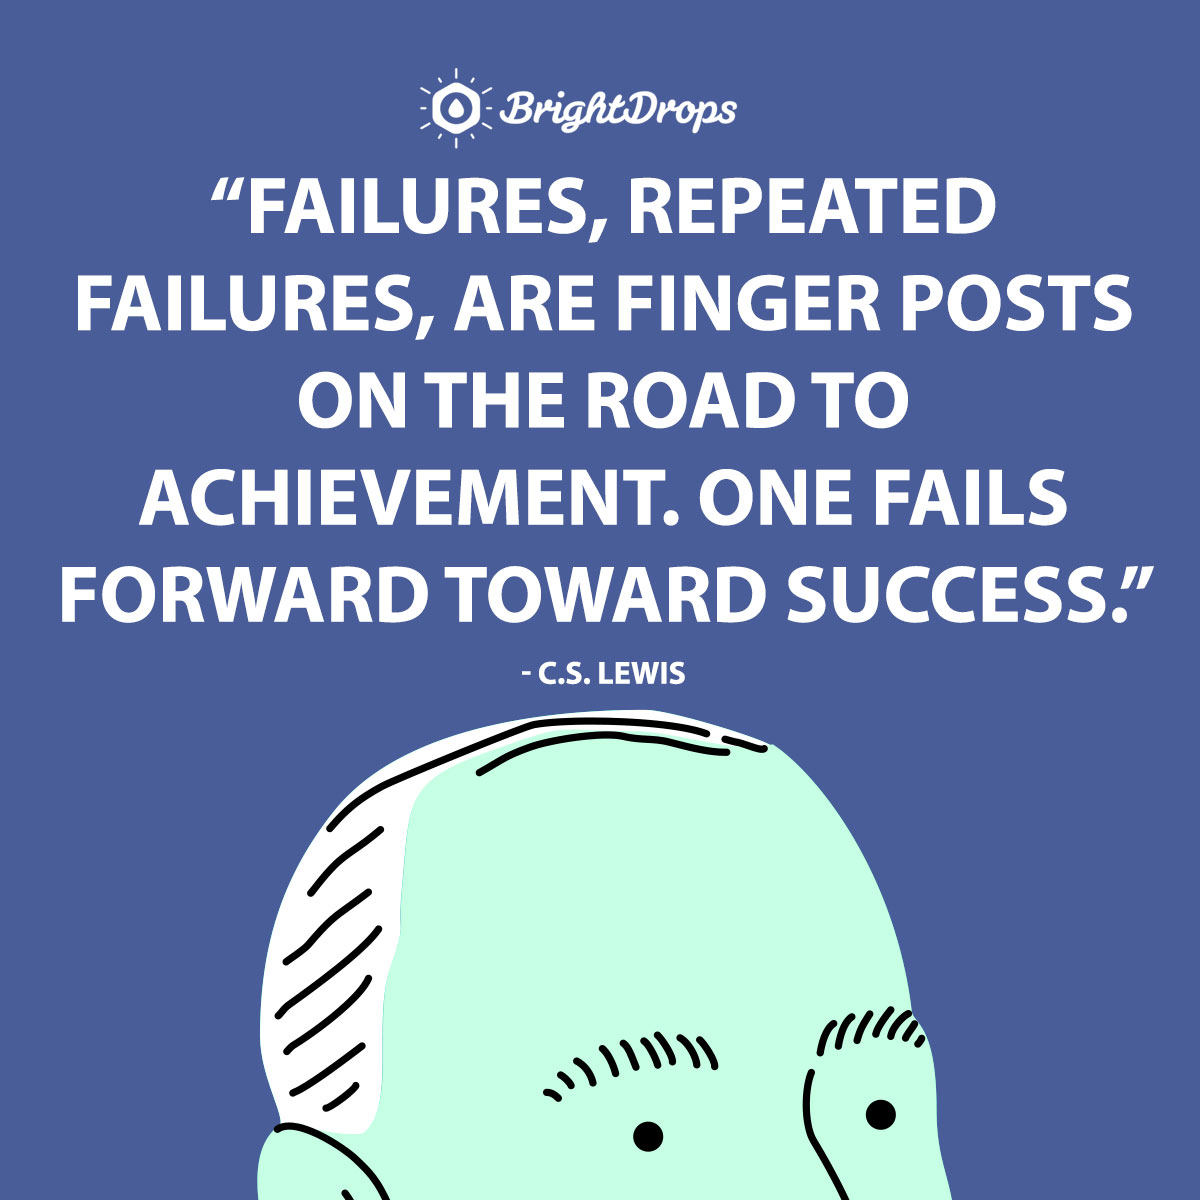 Failures, repeated failures, are finger posts on the road to achievement. One fails forward toward success. - C.S. Lewis